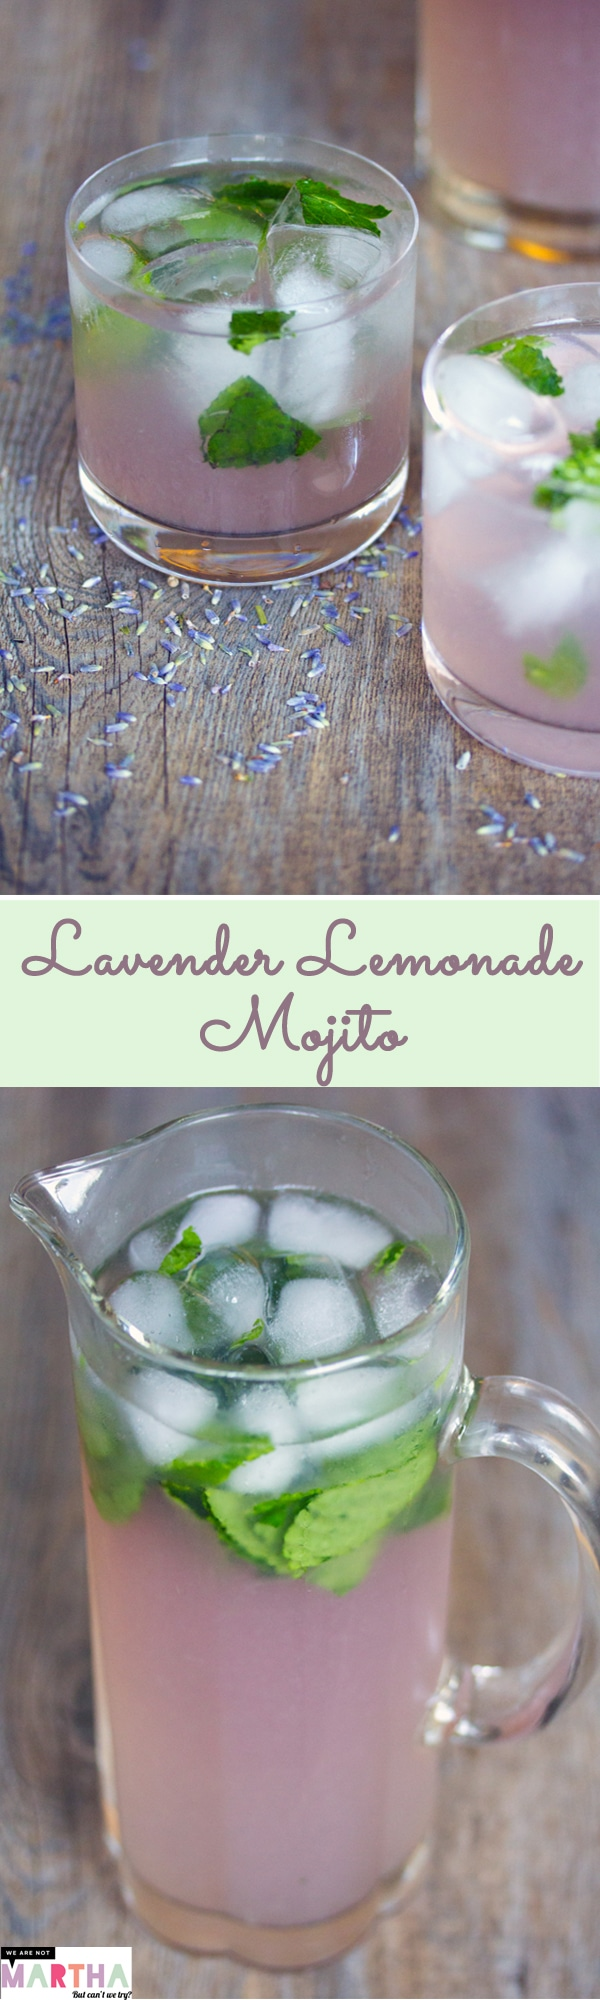 Lavender Lemonade Mojitos -- Made with a lavender simple syrup and homemade lemonade muddled with mint, these Lavender Lemonade Mojitos are the prettiest color and make for the perfect summer cocktail | wearenotmartha.com #cocktail #lavender #lemonade #mojitos